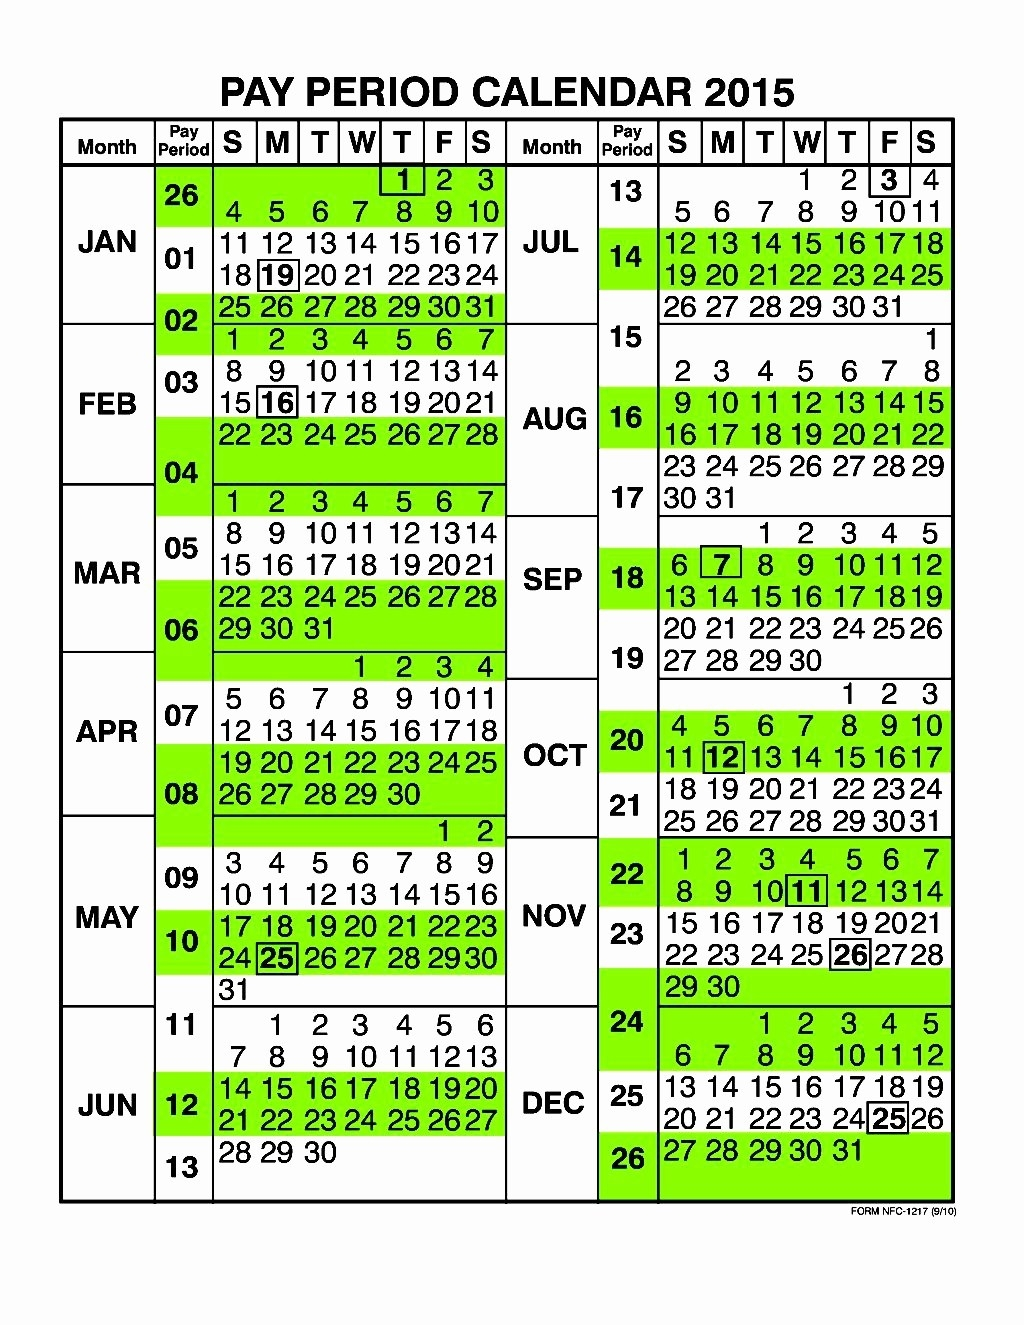 Postal Calendar 2018 Government Pay Period Calendar 2017  2020 Postal Pay Periods